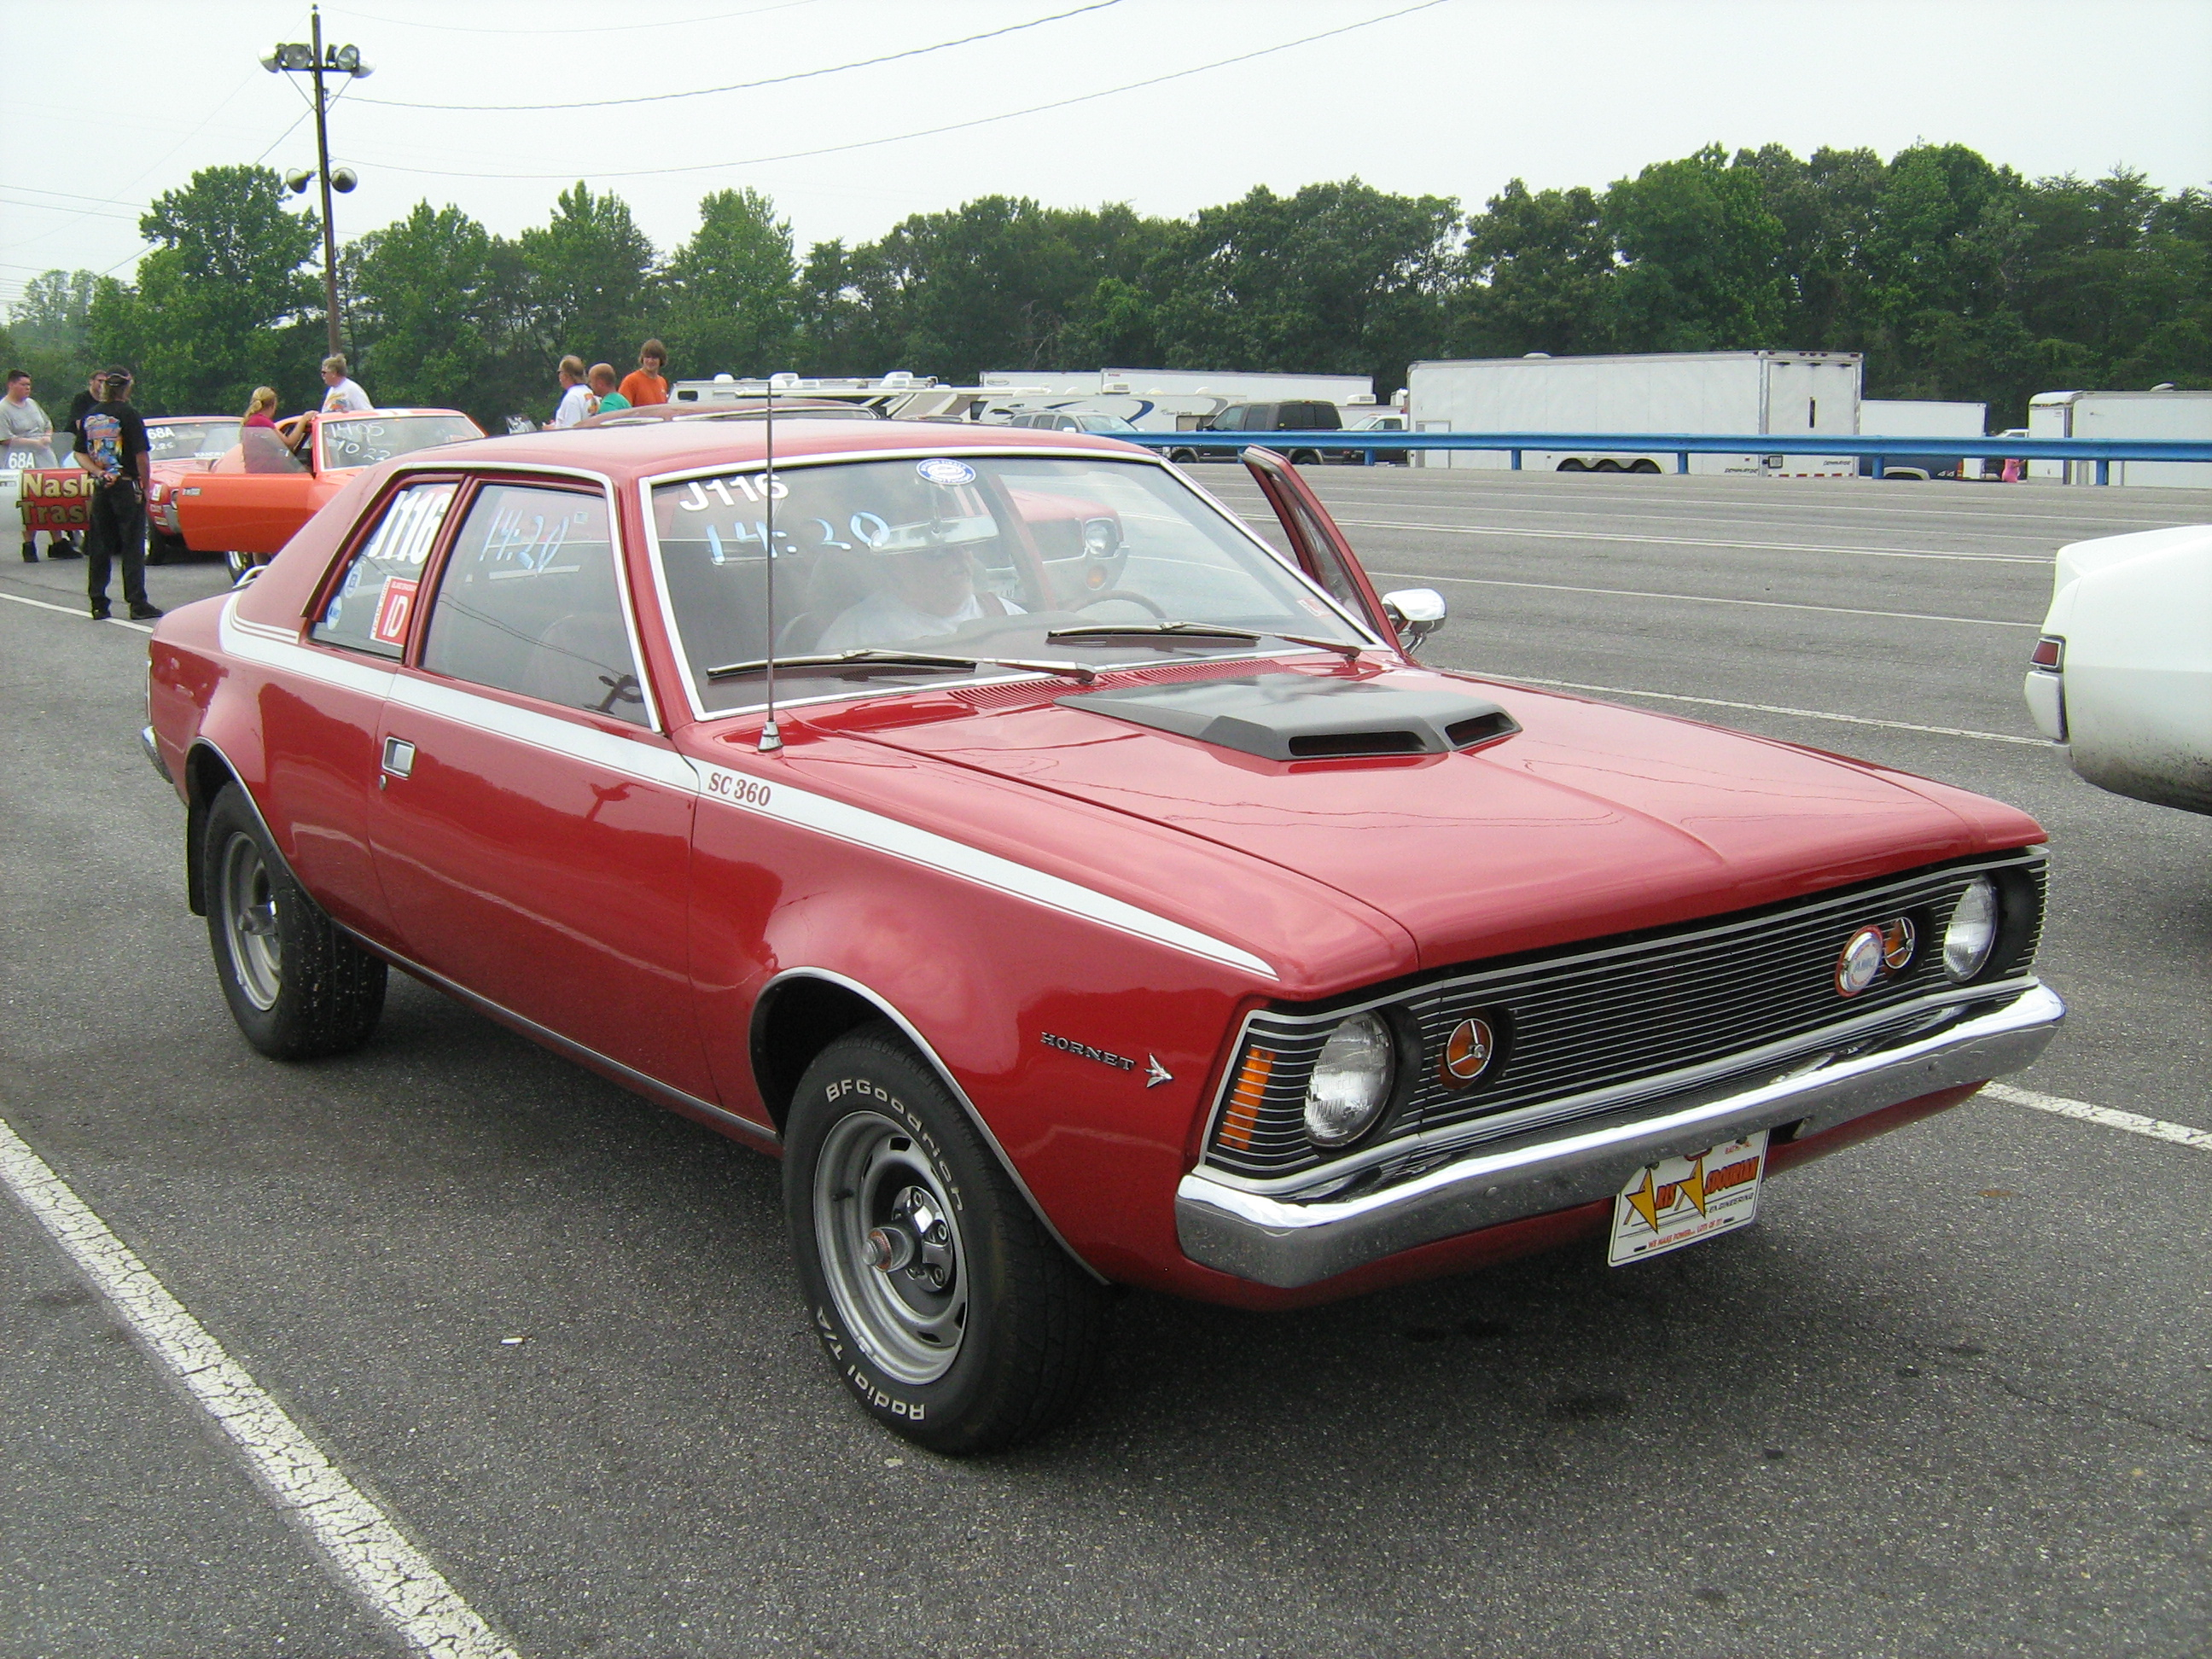 File 1971 Amc Hornet Sc360 Red Md-da Jpg